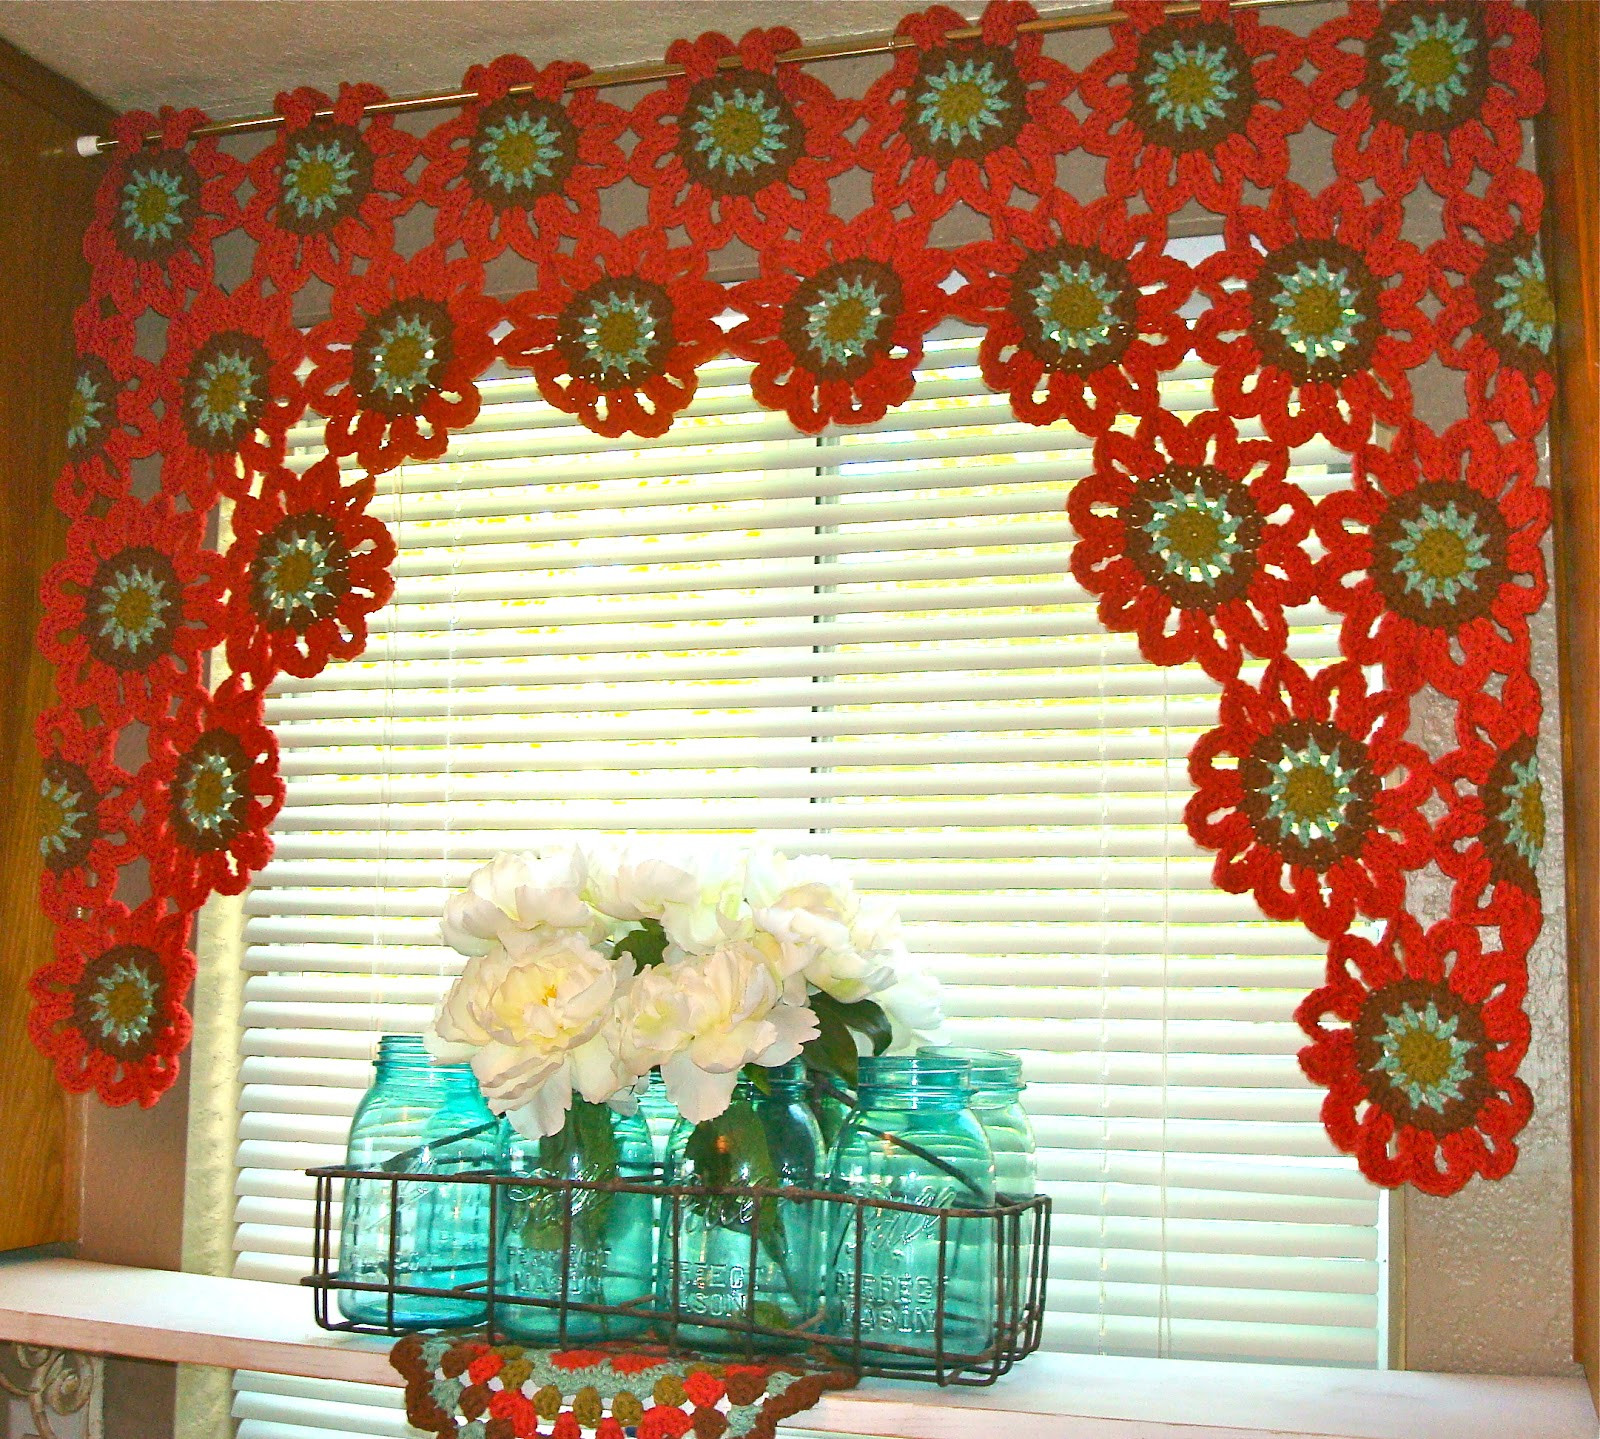 Crochet Ideas Lovely 19 Cool Patterns for Crochet Curtains Of Brilliant 40 Pictures Crochet Ideas